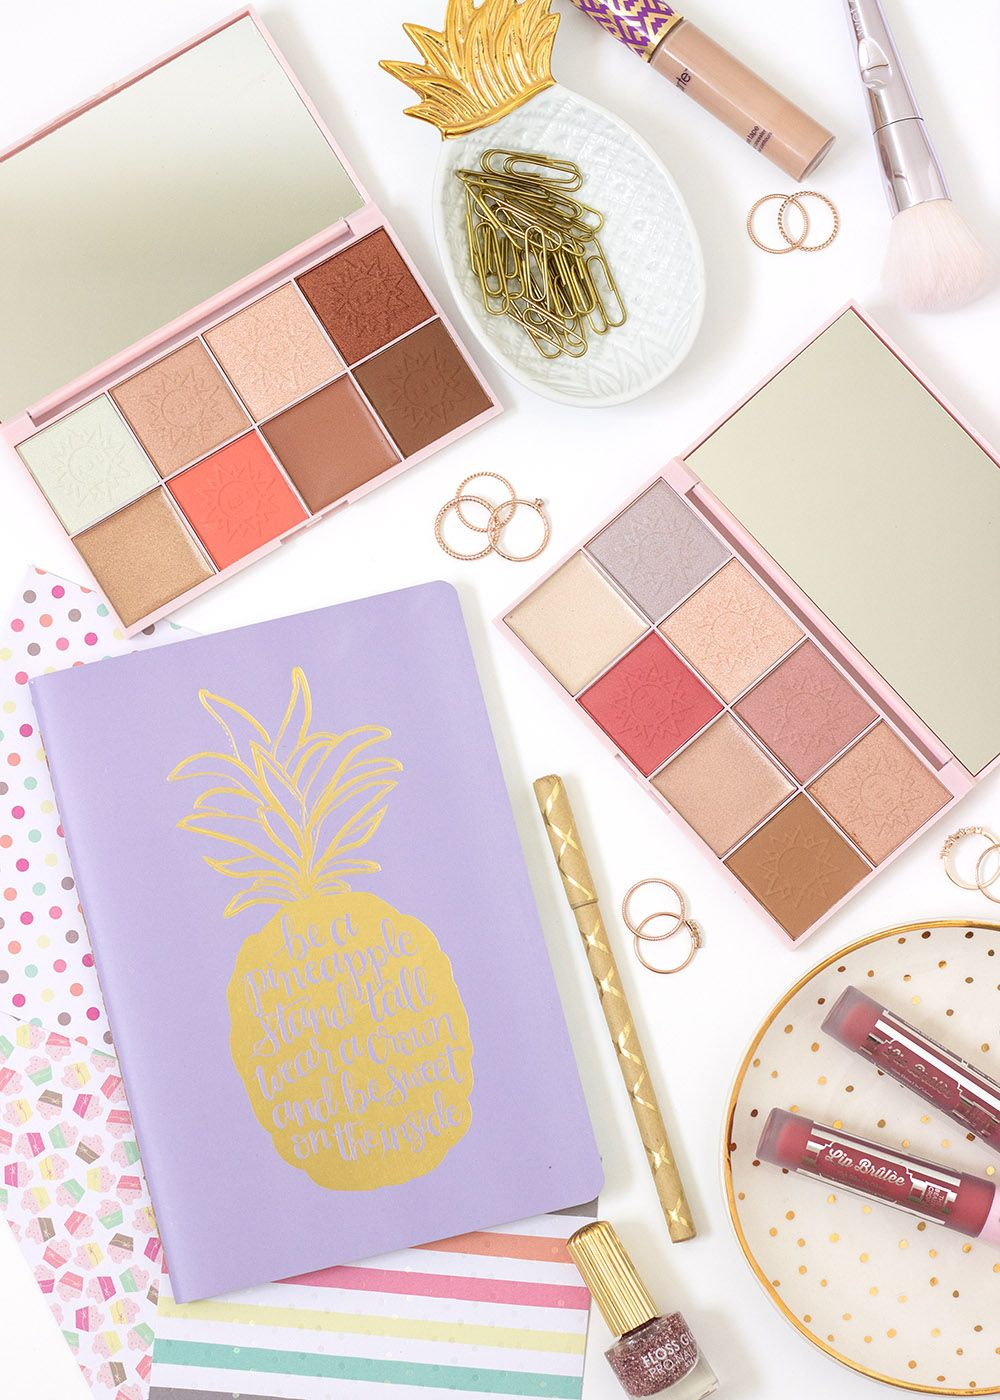 Glow OnTheGo With The Beauty Crop Travel Tea Palettes